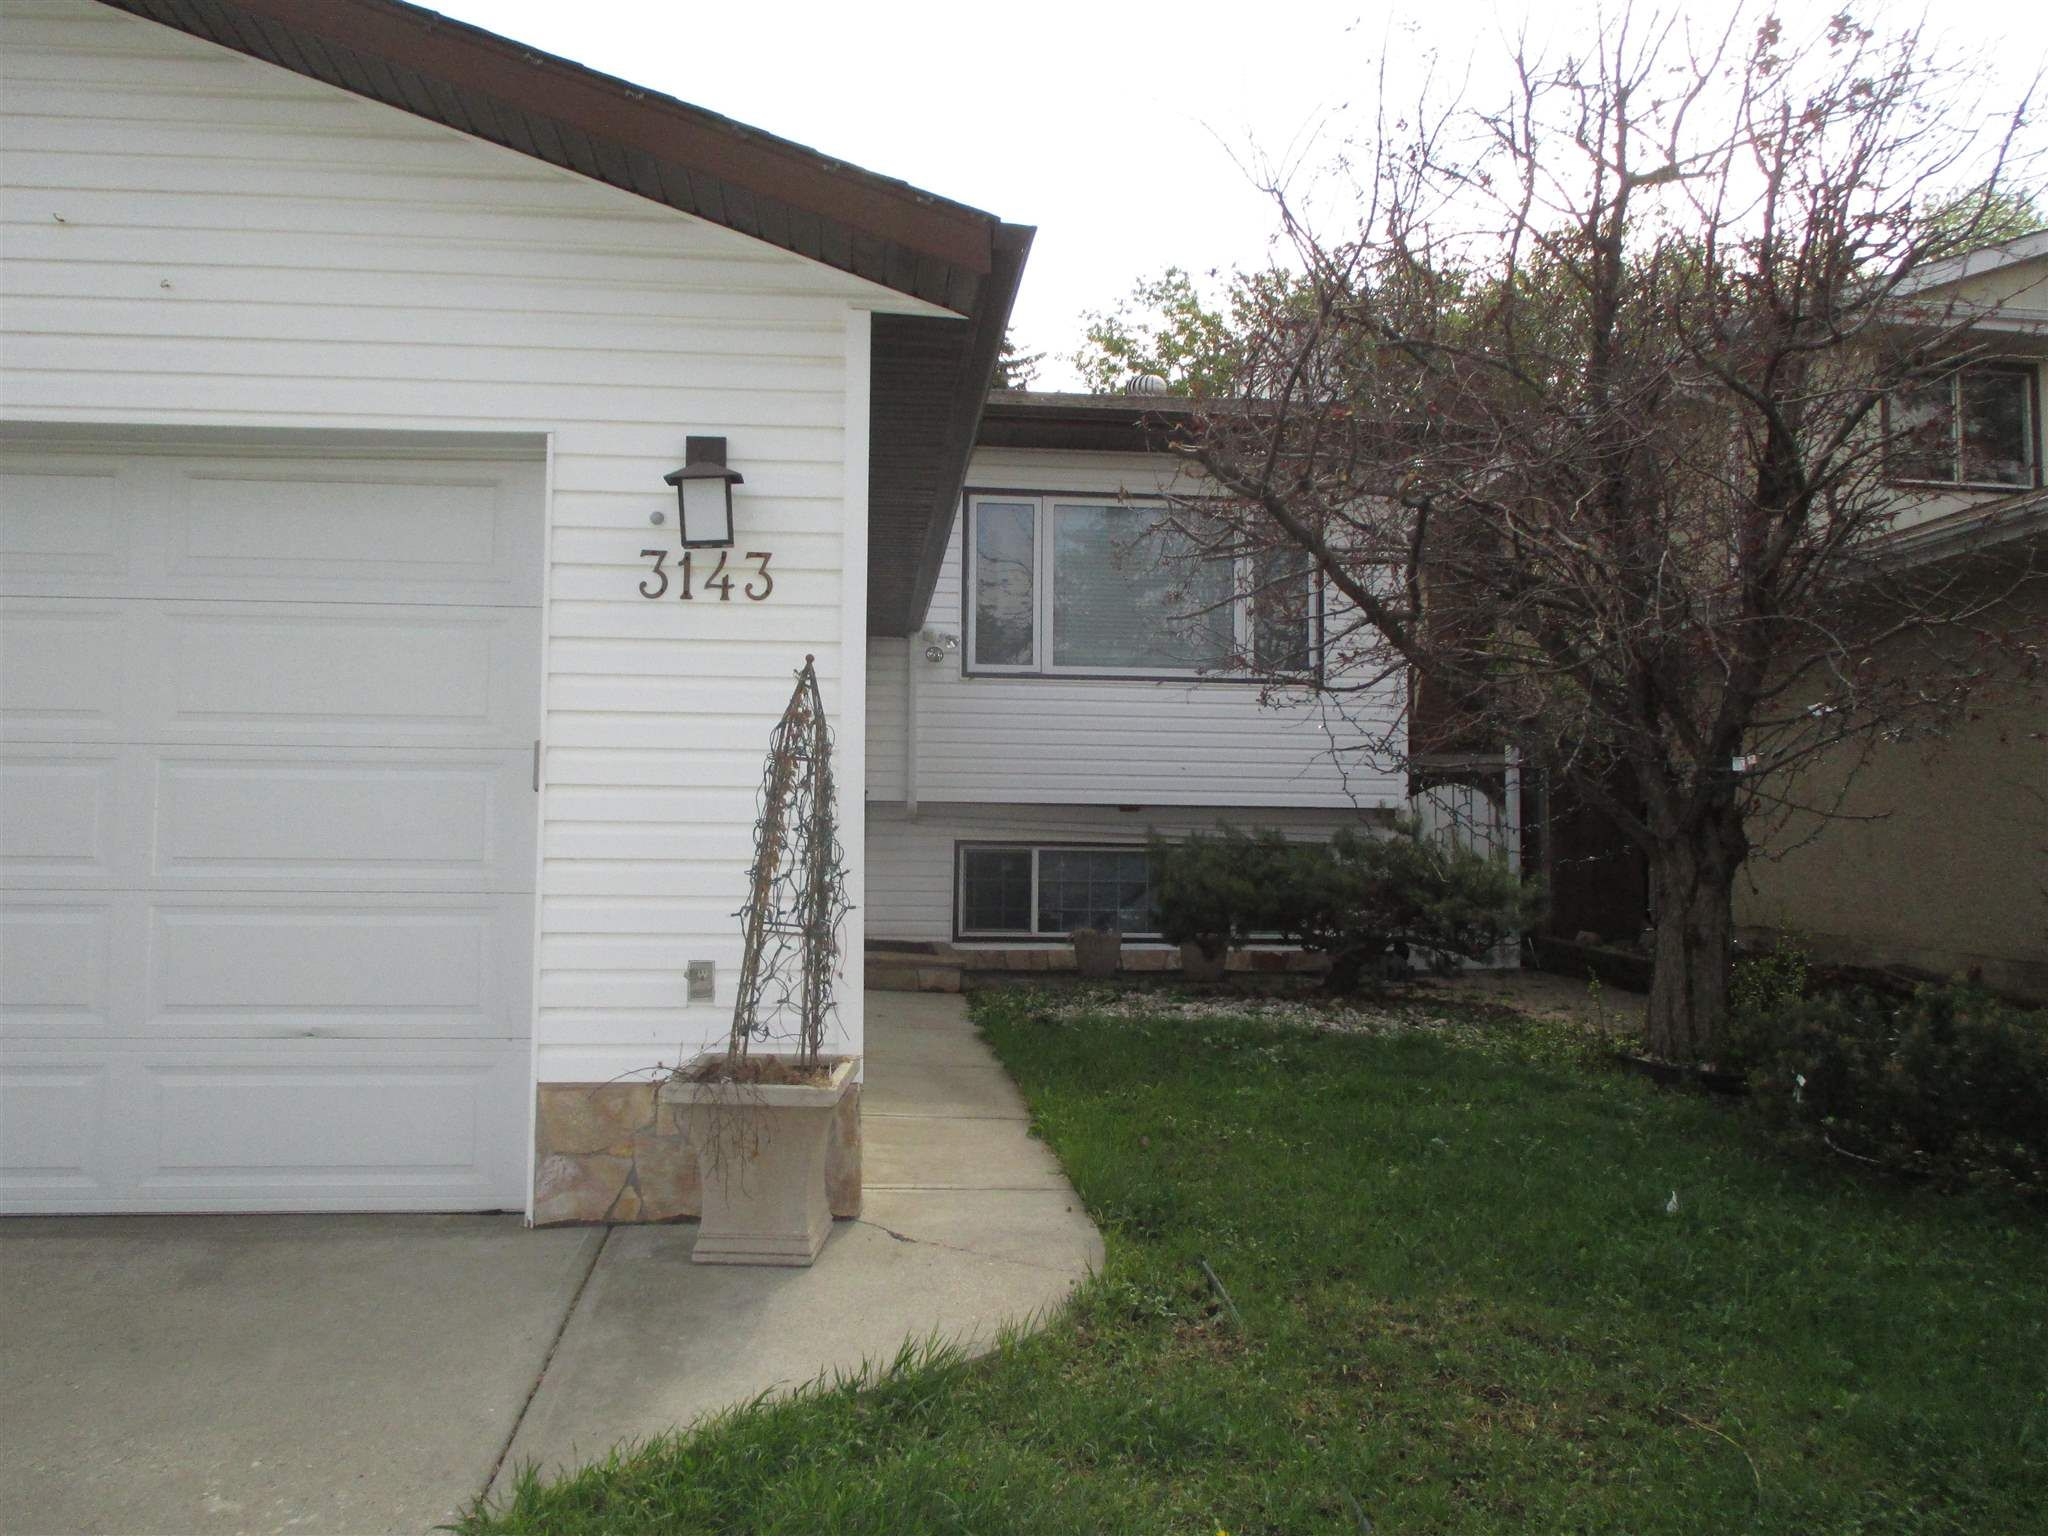 Main Photo: 3143 49A Street in Edmonton: Zone 29 House for sale : MLS®# E4244807